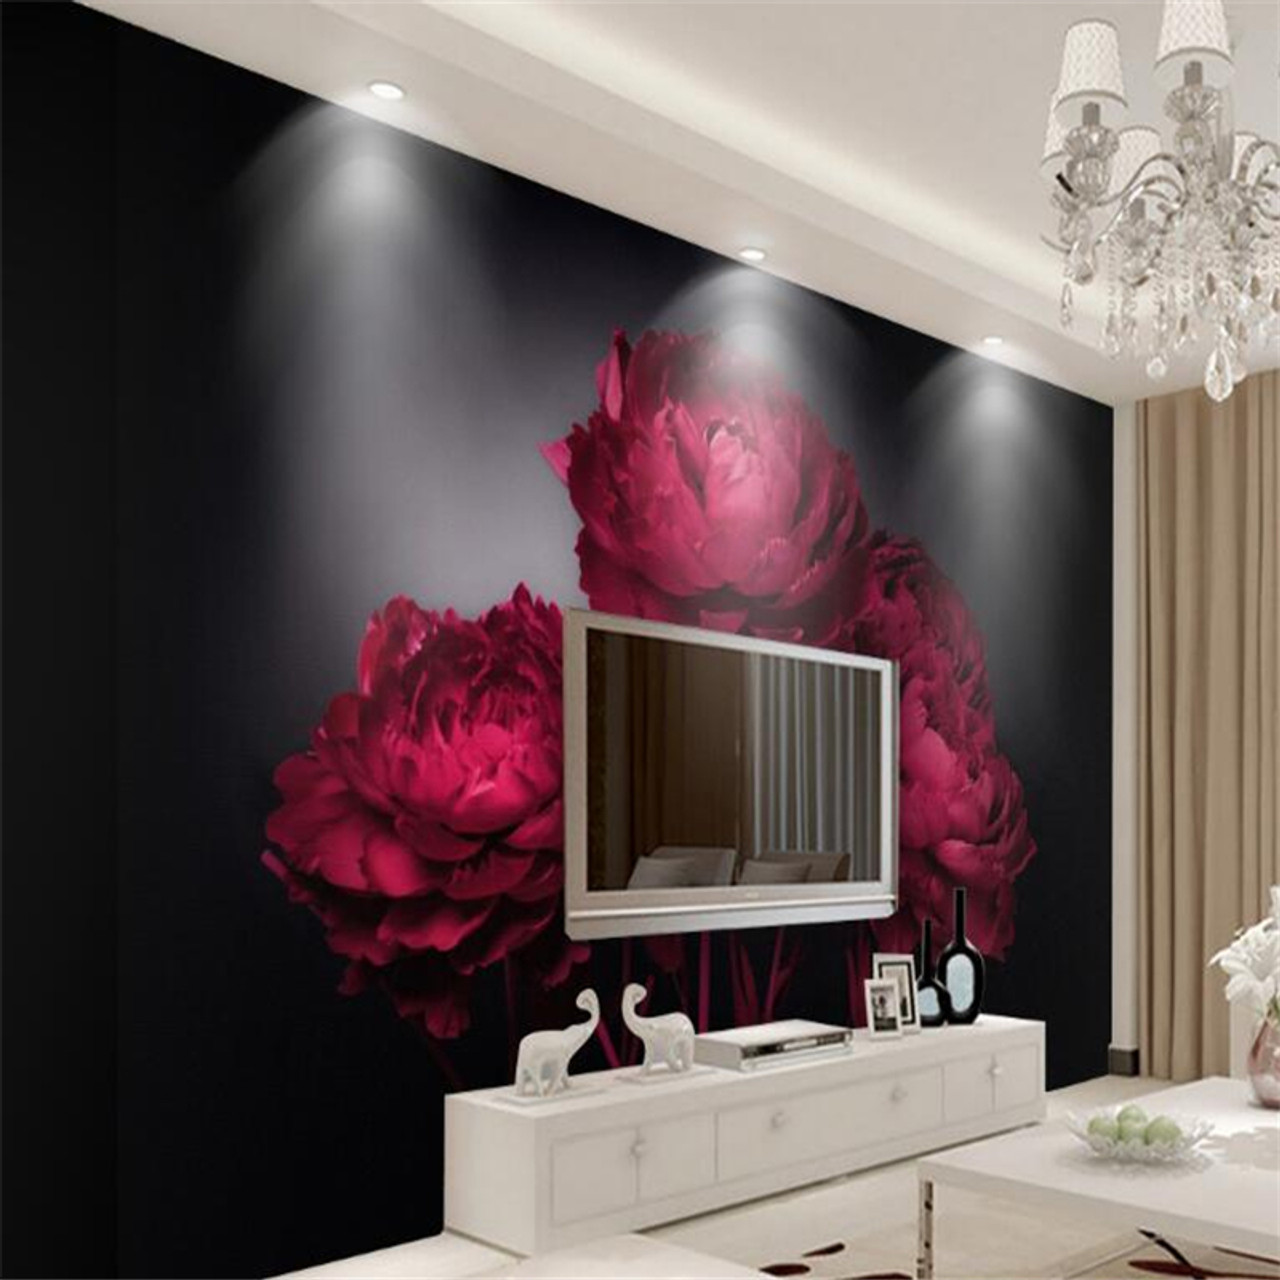 Beibehang 3d Wallpaper Romantic Red Roses Tv Background Wall Living Room Bedroom Background Mural Photo Wallpaper For Walls 3 D